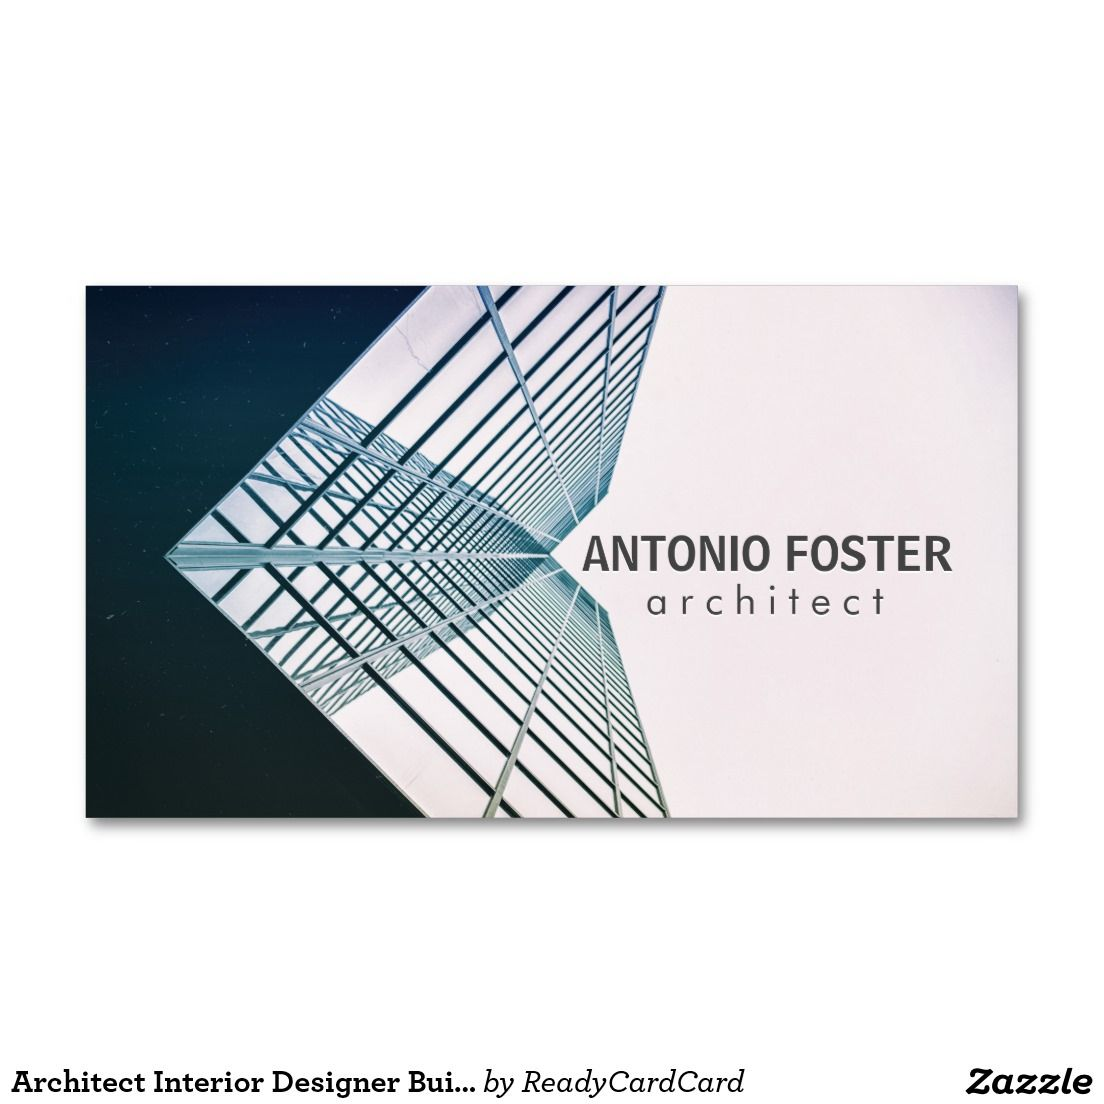 Architect interior designer buildings sky skyline business card architect interior designer buildings sky skyline business card magicingreecefo Choice Image